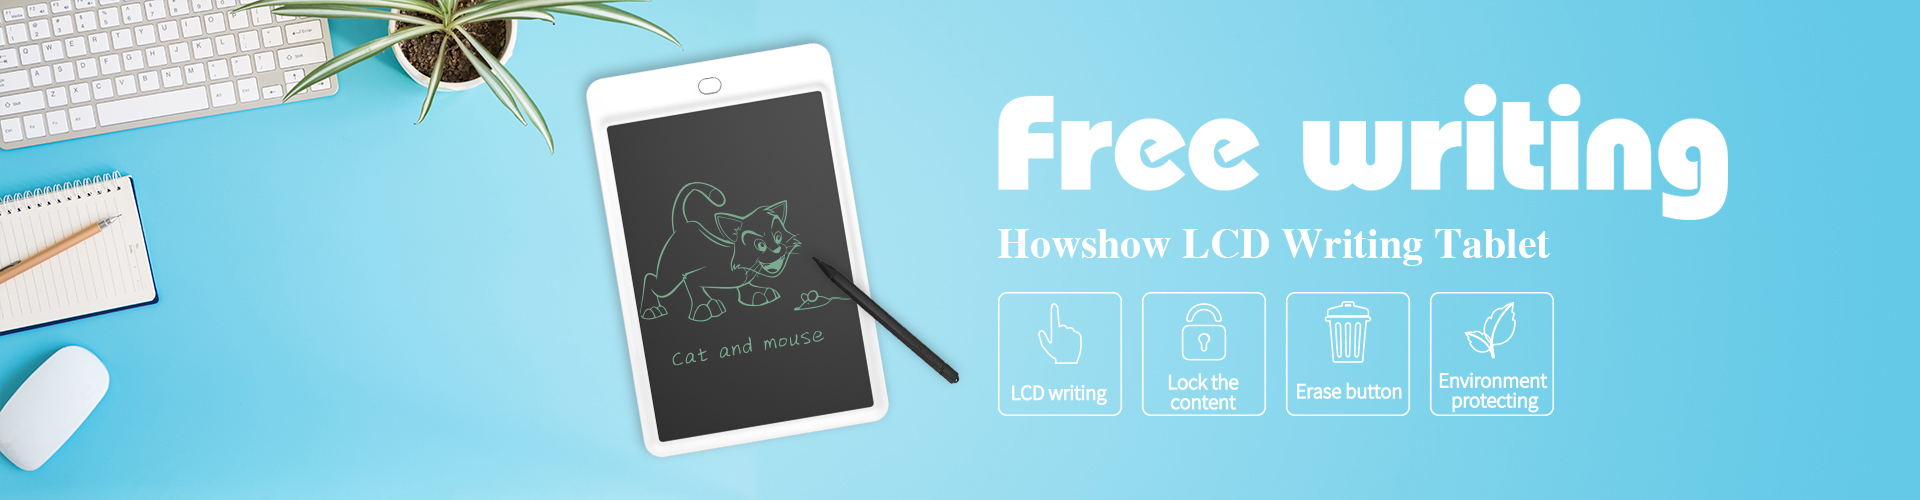 free writing. Howshow LCD Writing Tablet. 10 inch handwriting board